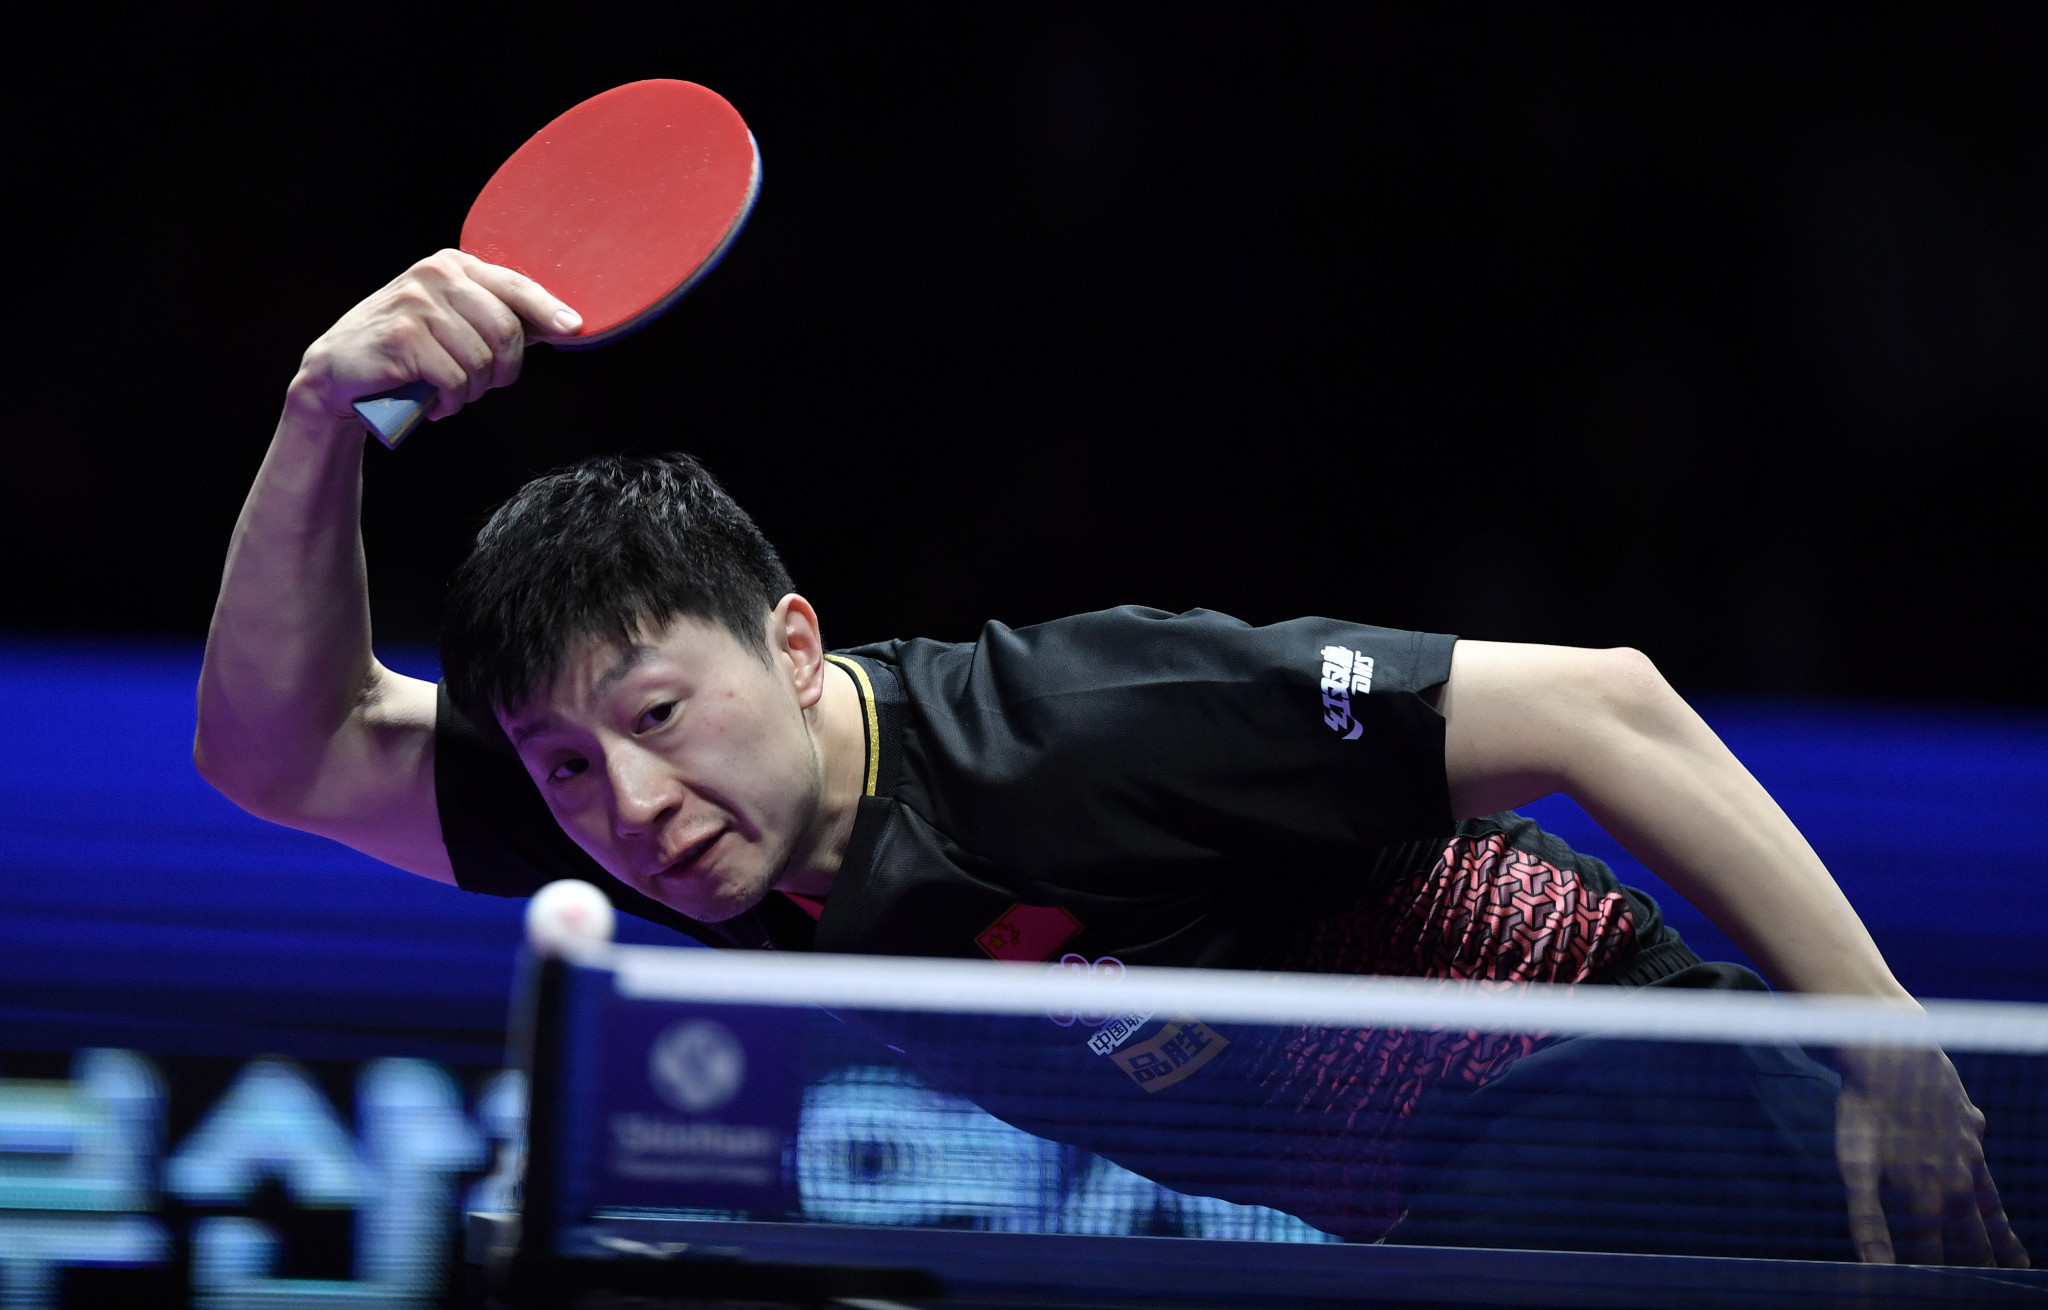 The International Table Tennis Federation gained more than one million new fans last year, they have claimed ©Getty Images